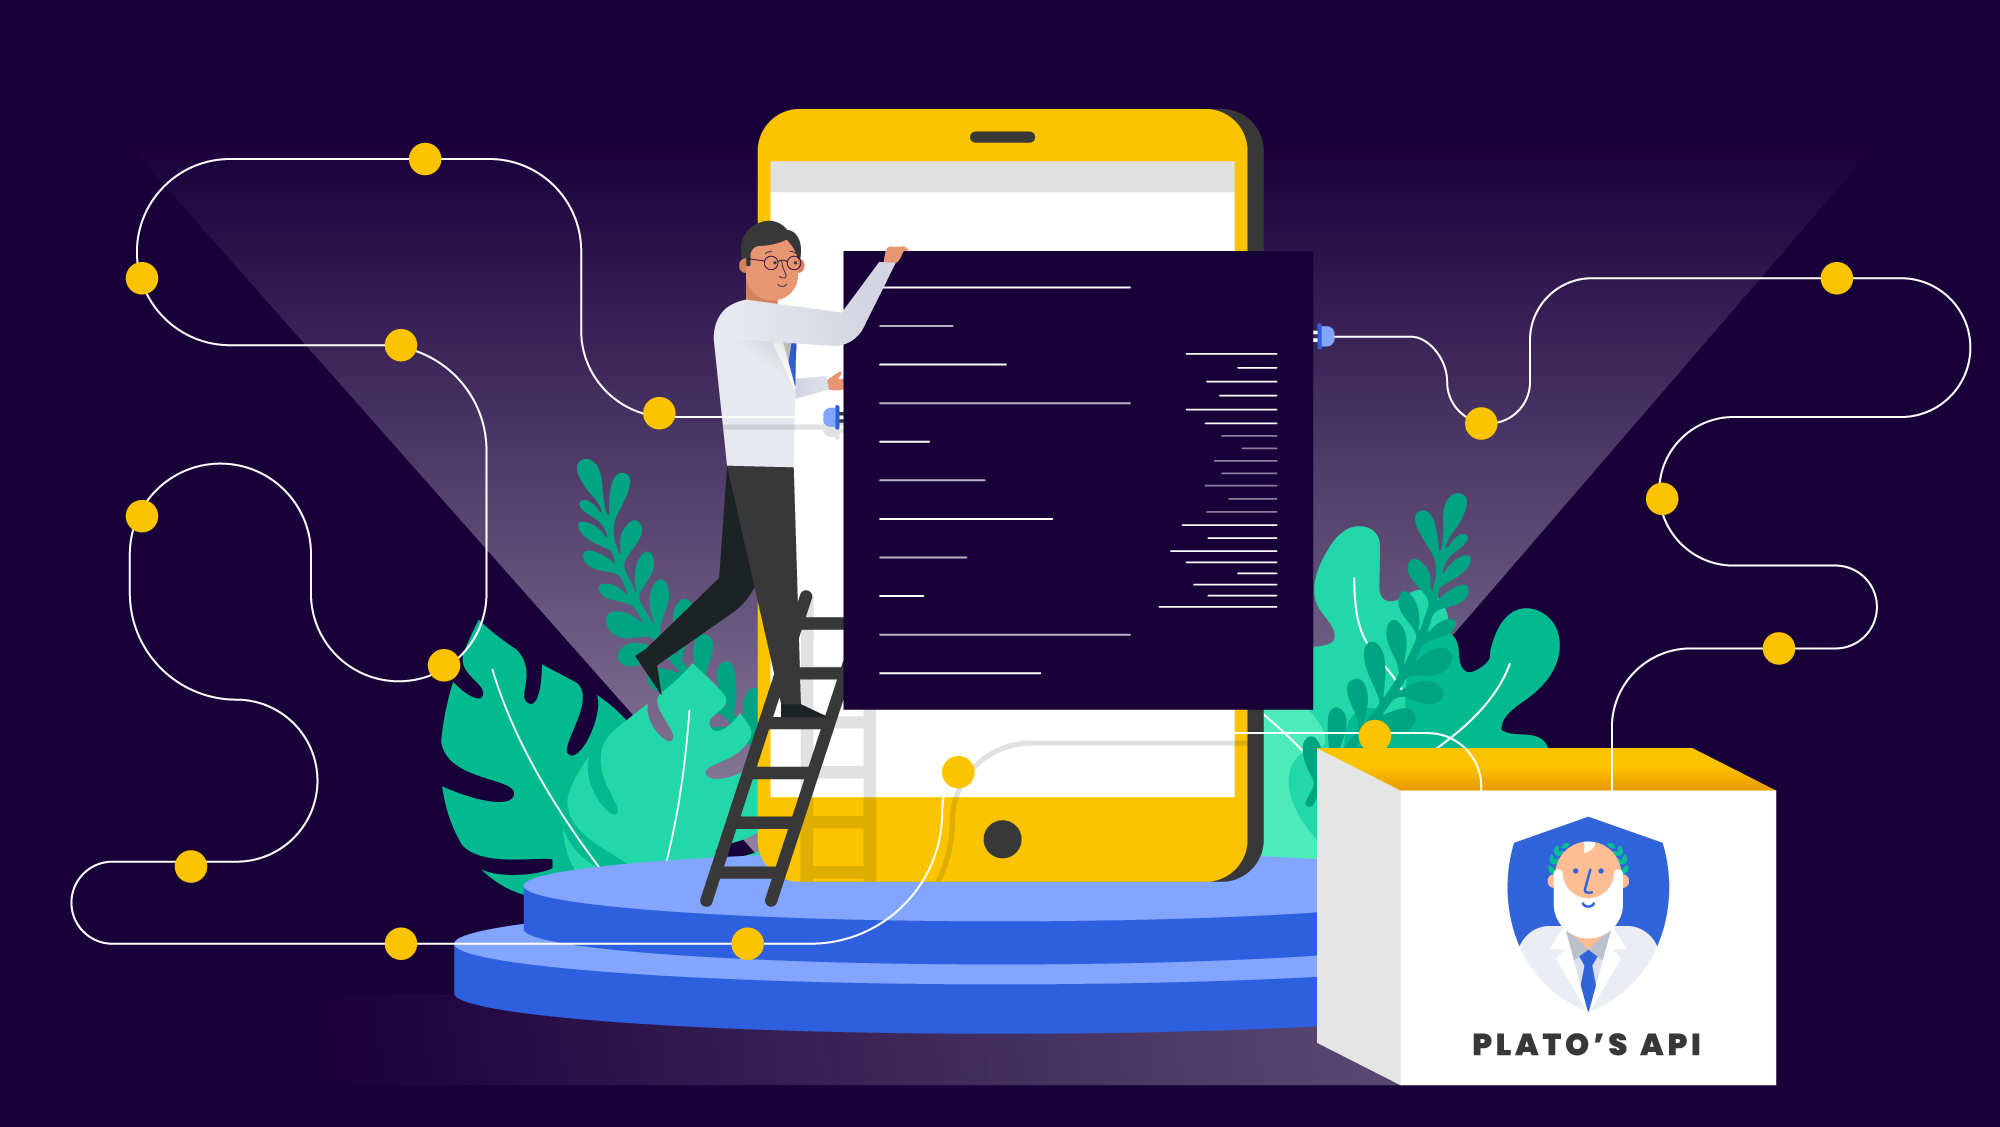 Plato has an API – use it to enhance your practice